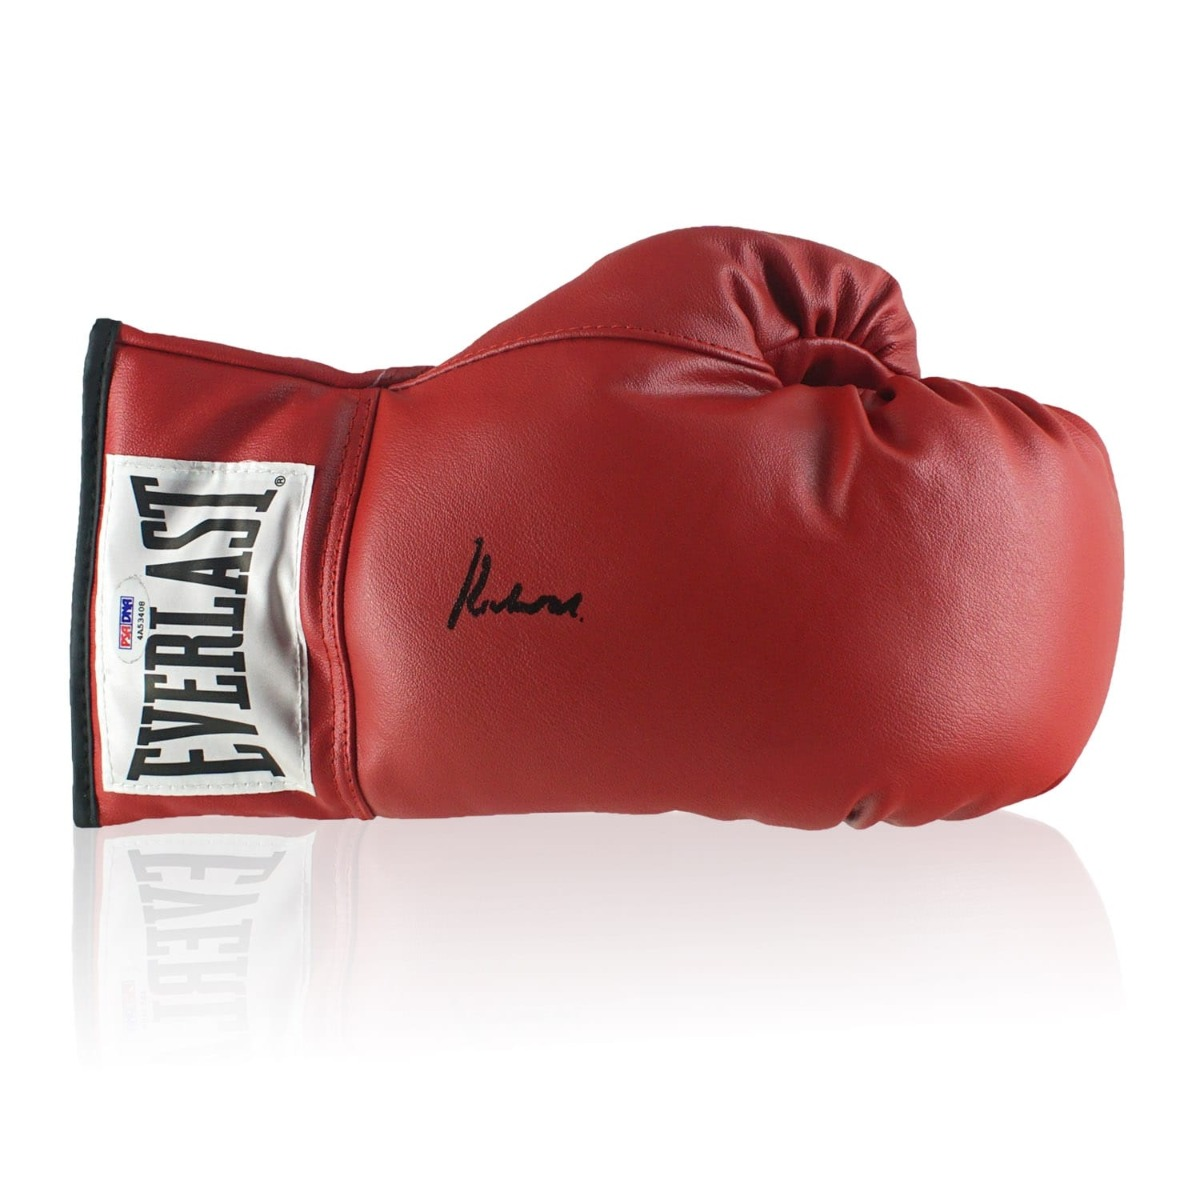 Muhammad Ali Signed Boxing Glove (PSA DNA 4A53408)